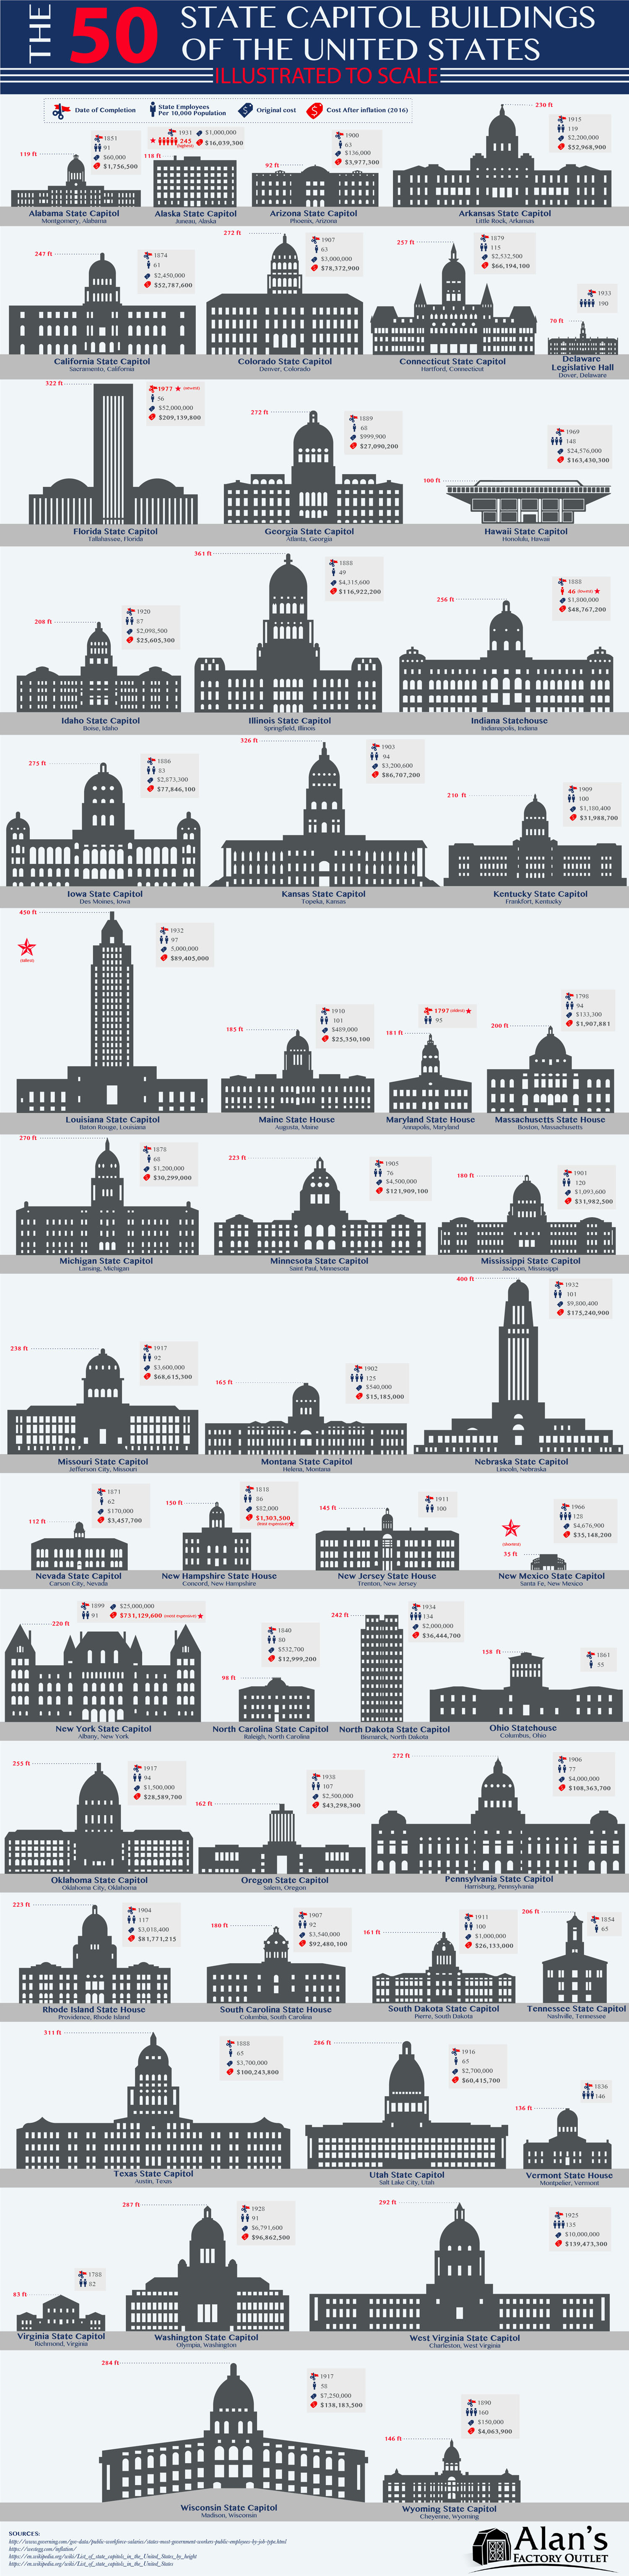 The 50 State Capitol Buildings of the U.S. Illustrated to Scale